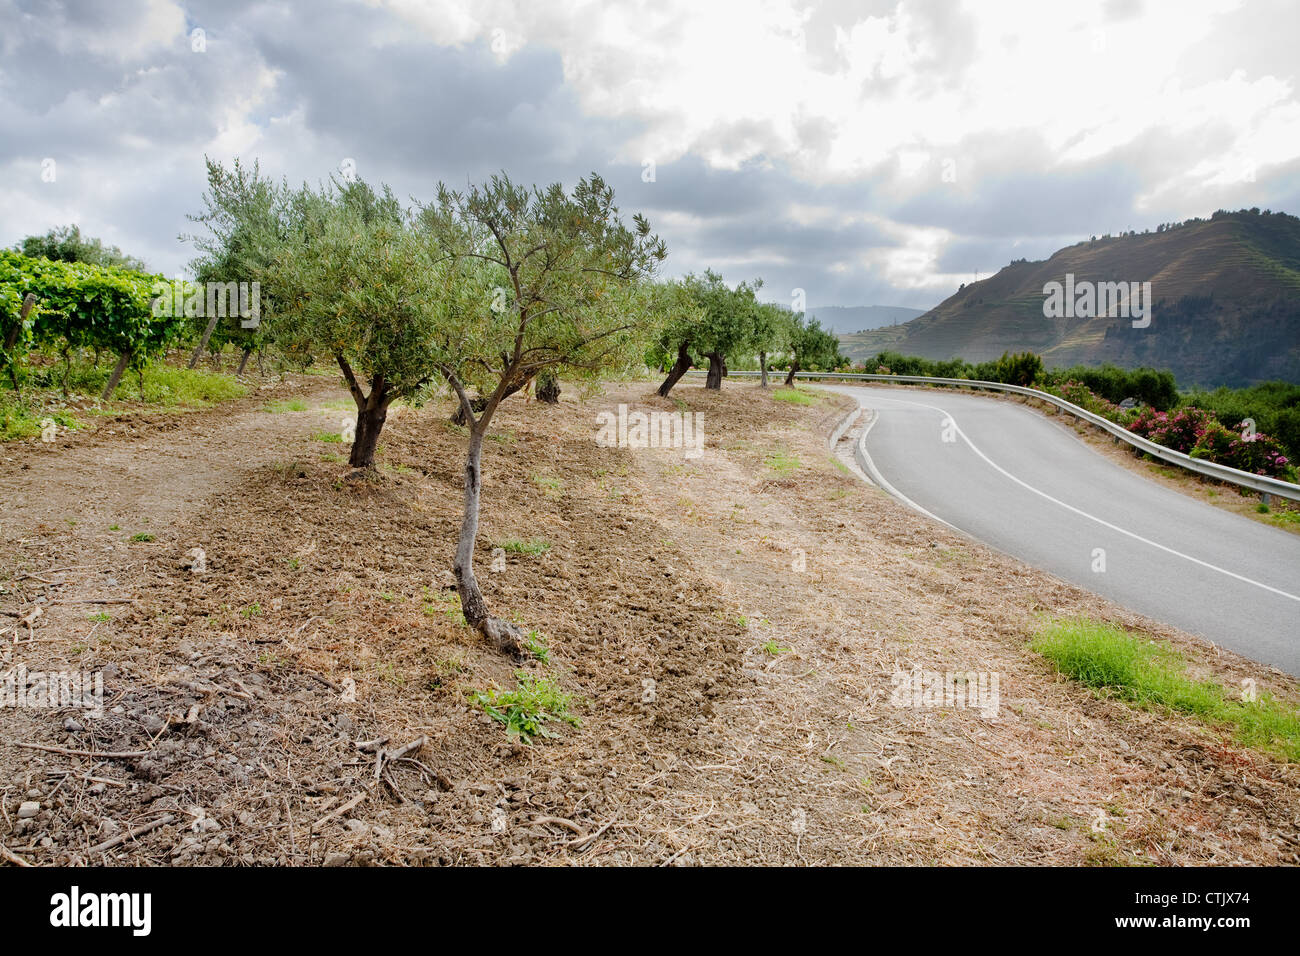 Gentle Slope Stock Photos & Gentle Slope Stock Images - Alamy